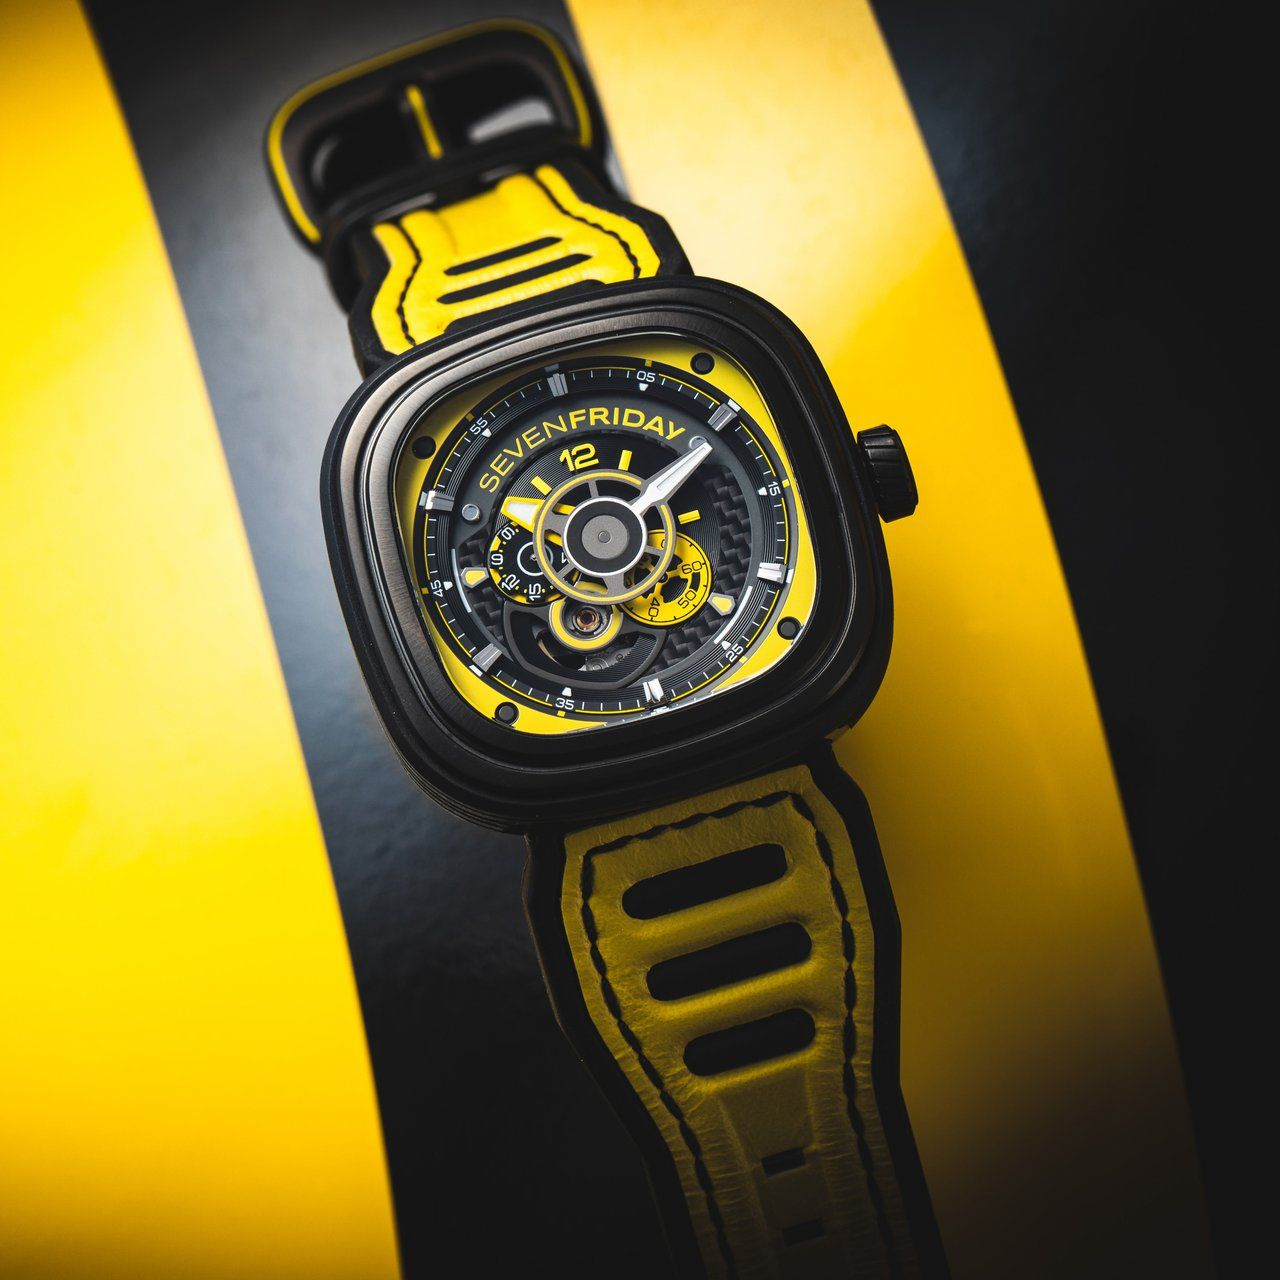 P3B/03 Racing Team Yellow Stainless steel case, Racing